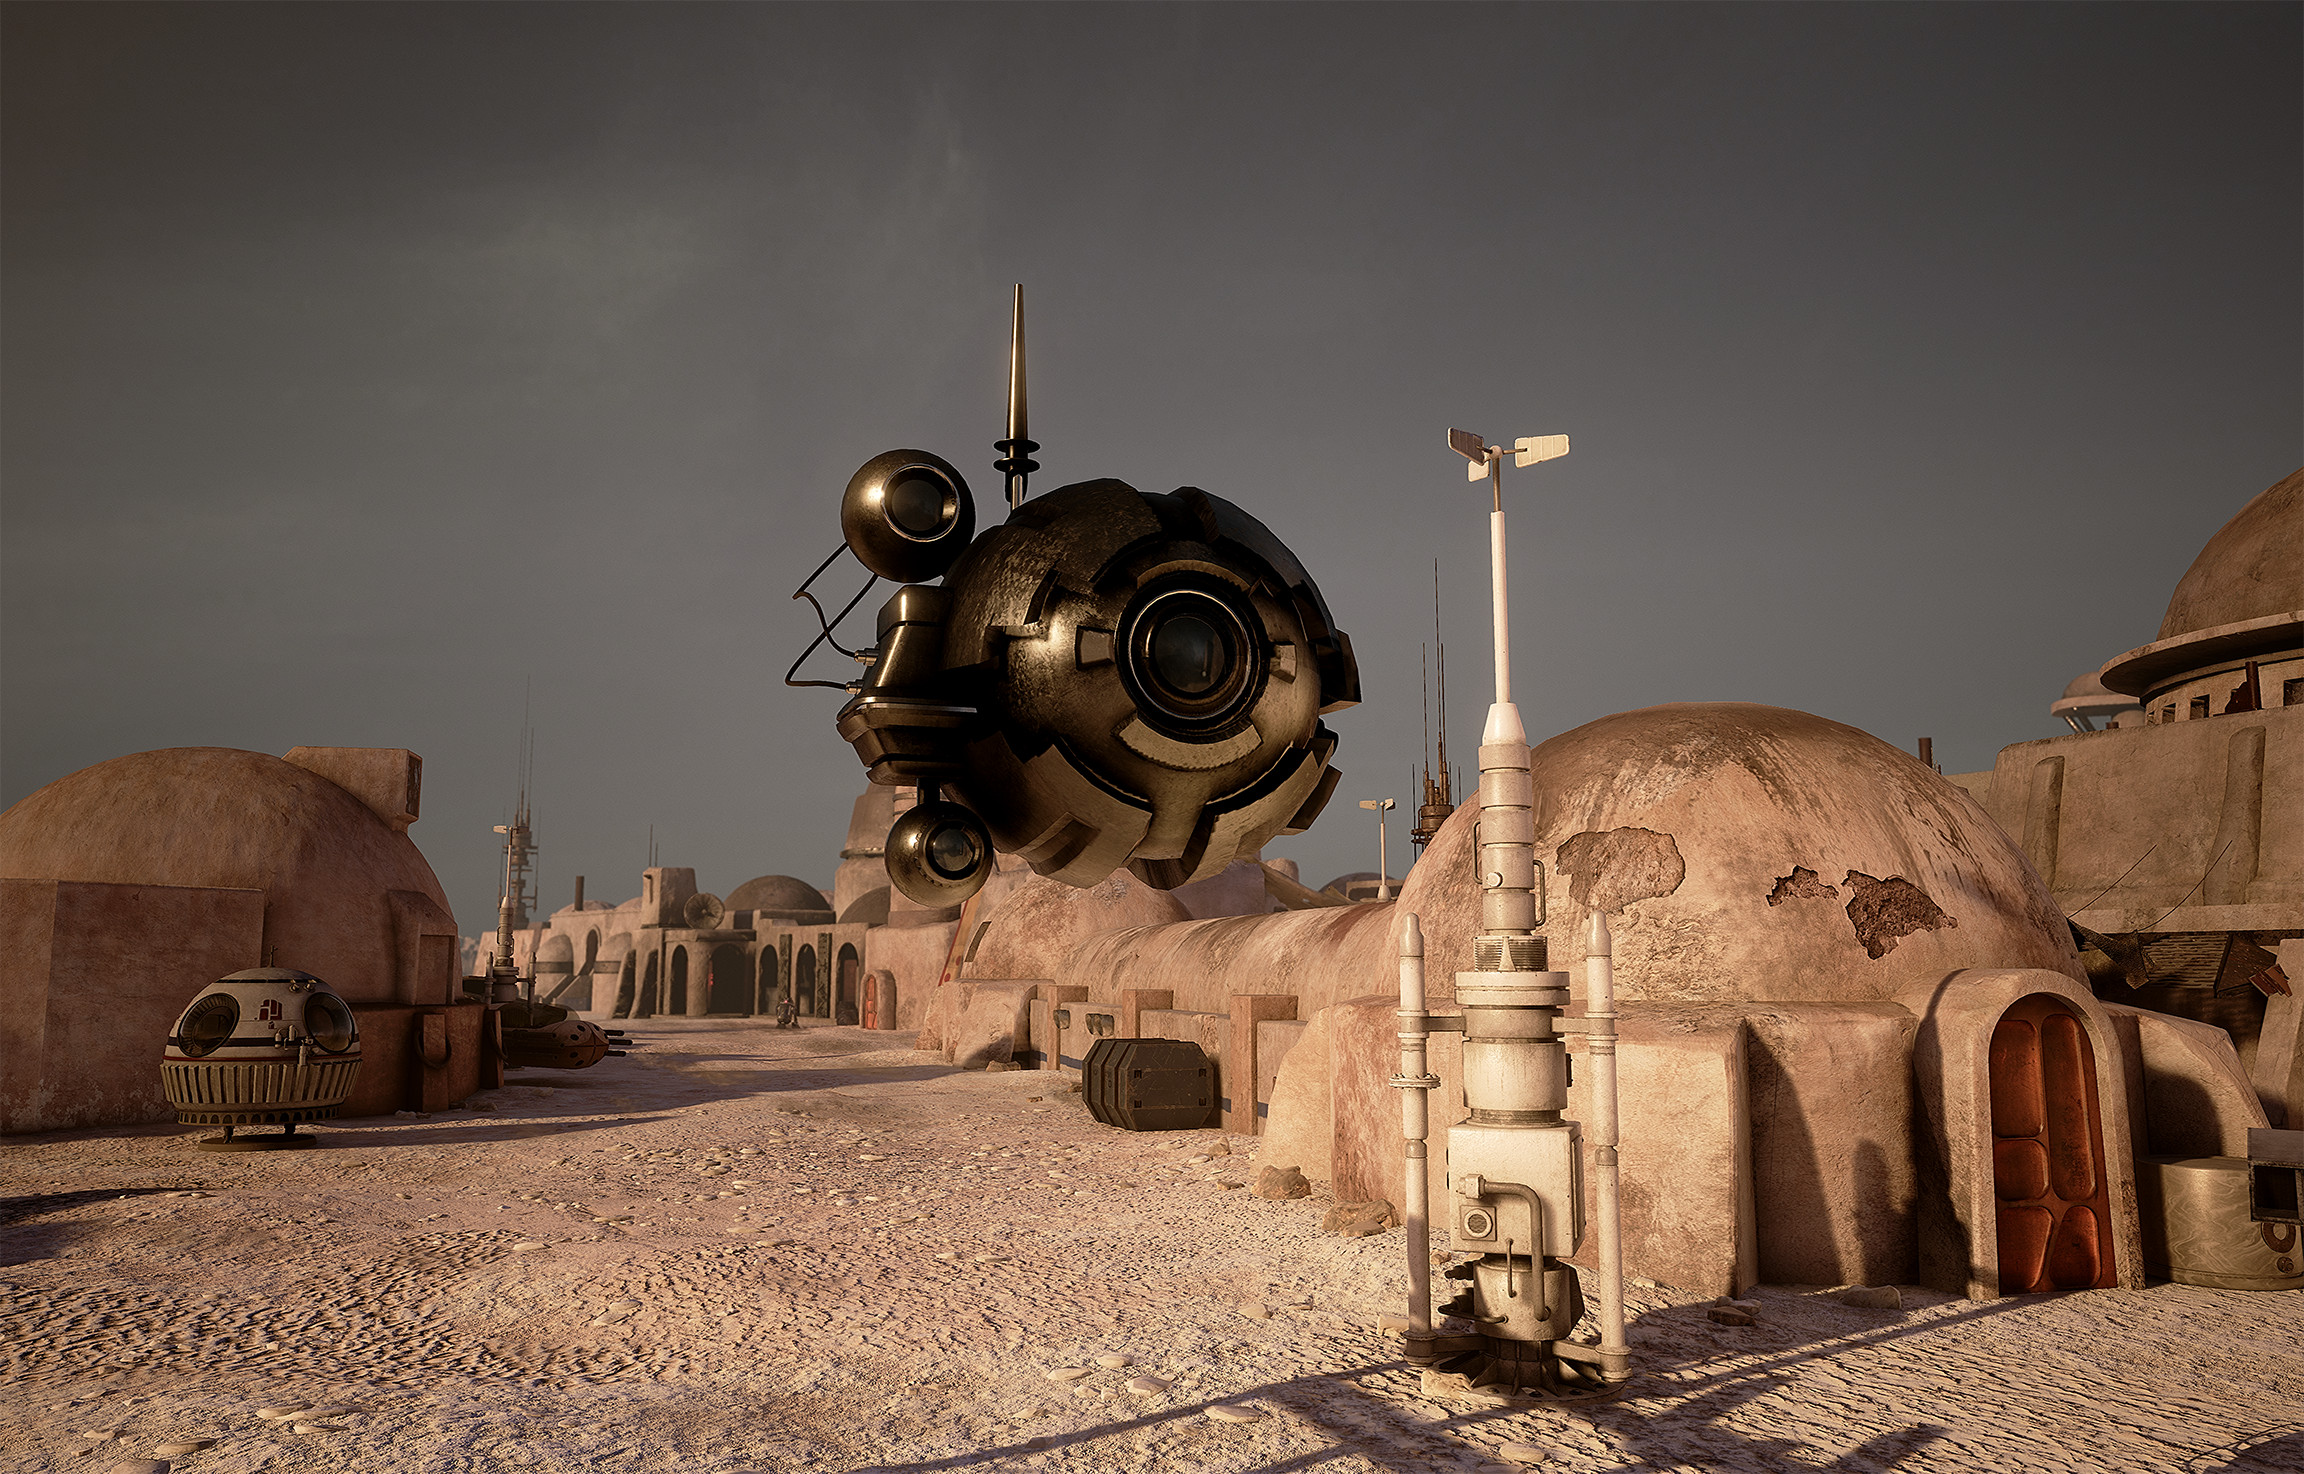 Scout Droid: model, textures, shader Buildings: model, textures, shader